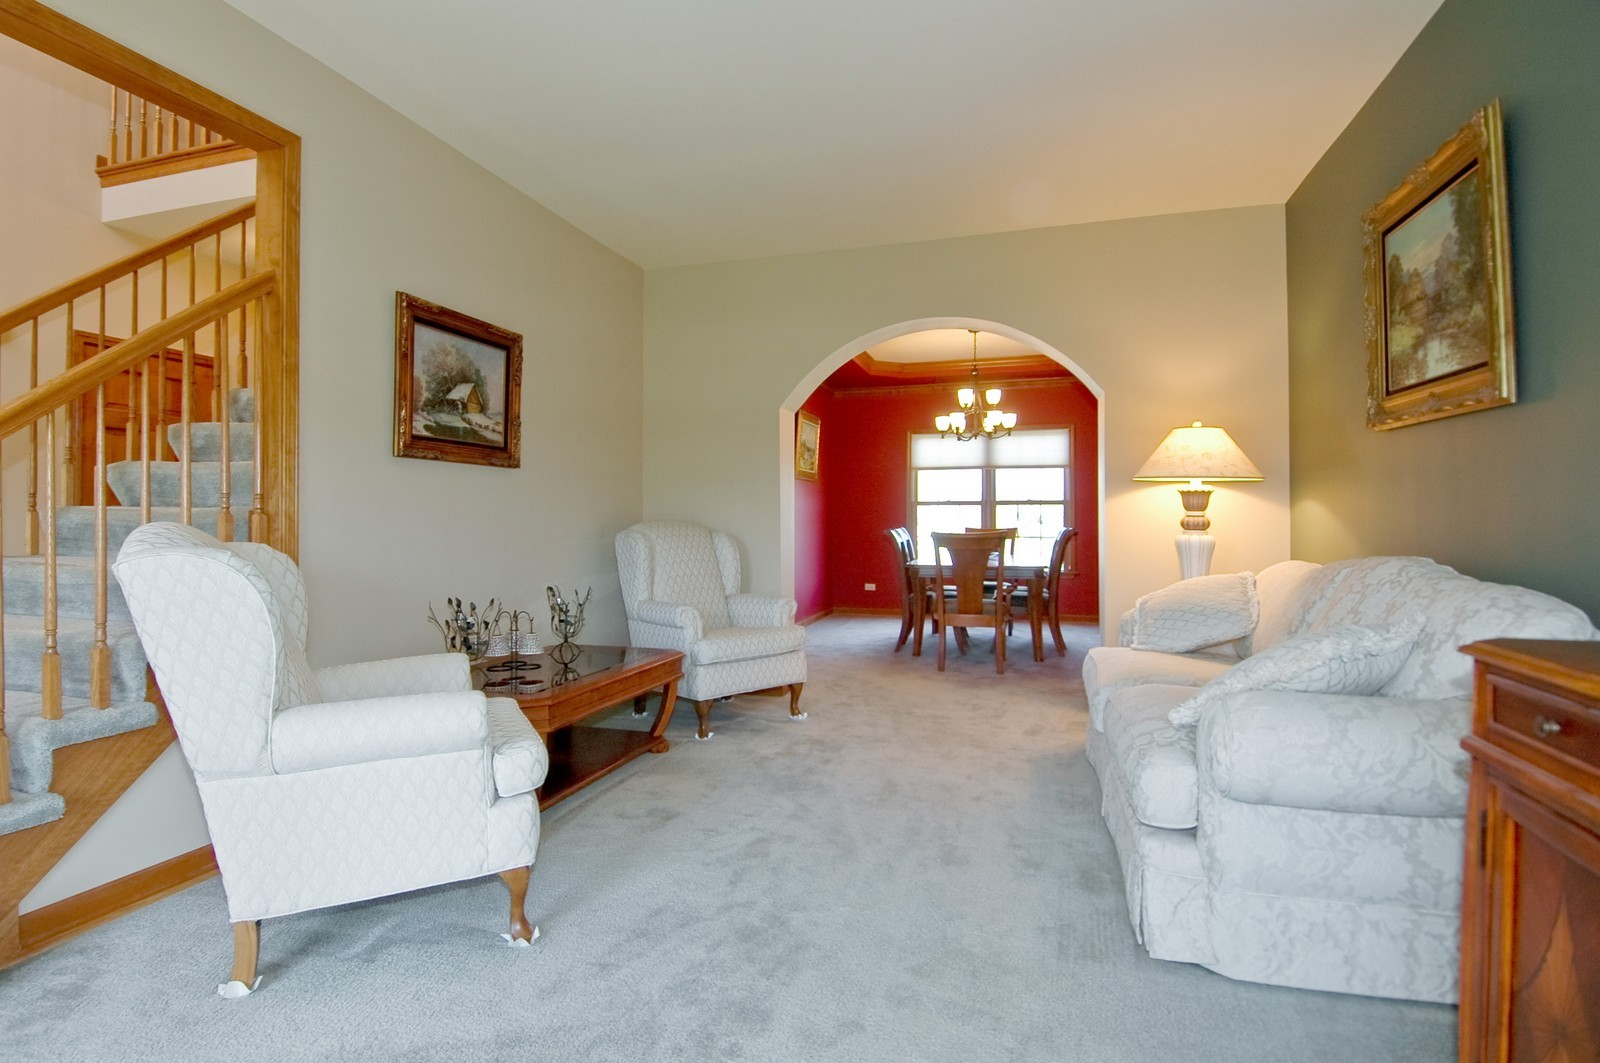 Real Estate Photography - 491 Clover, Algonquin, IL, 60102 - Living Room / Dining Room